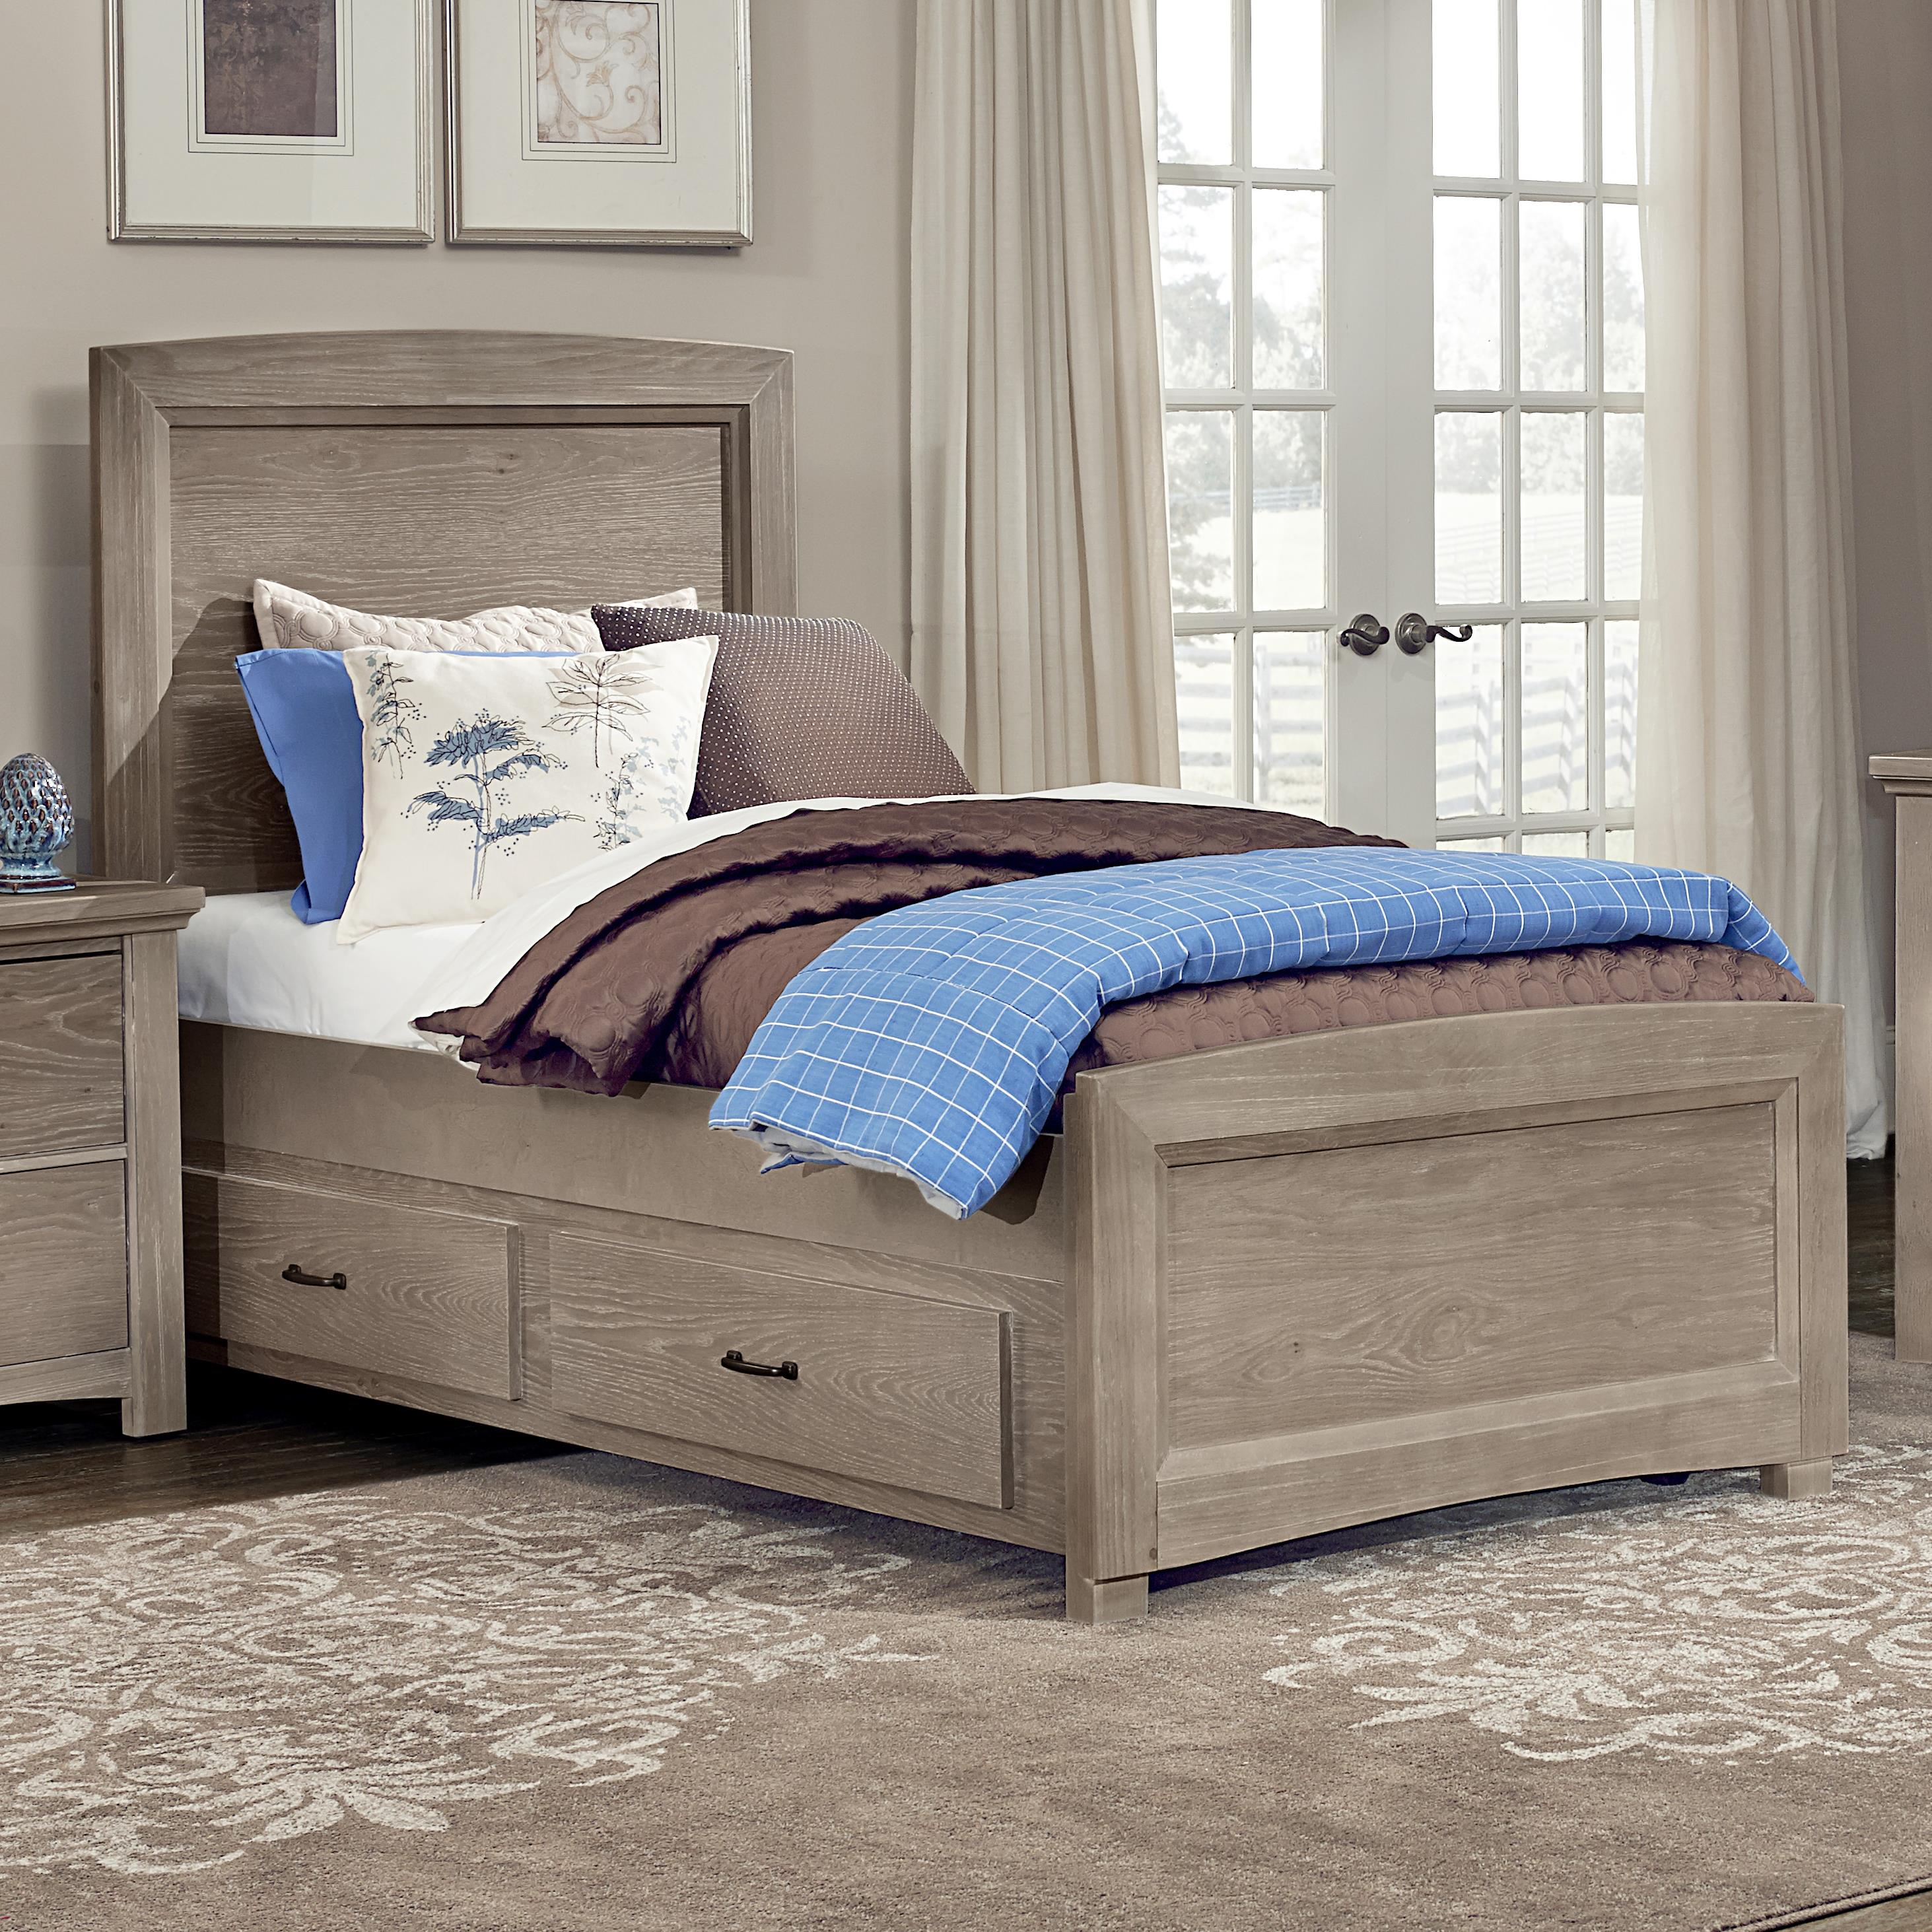 donco trundle bed assembly instructions